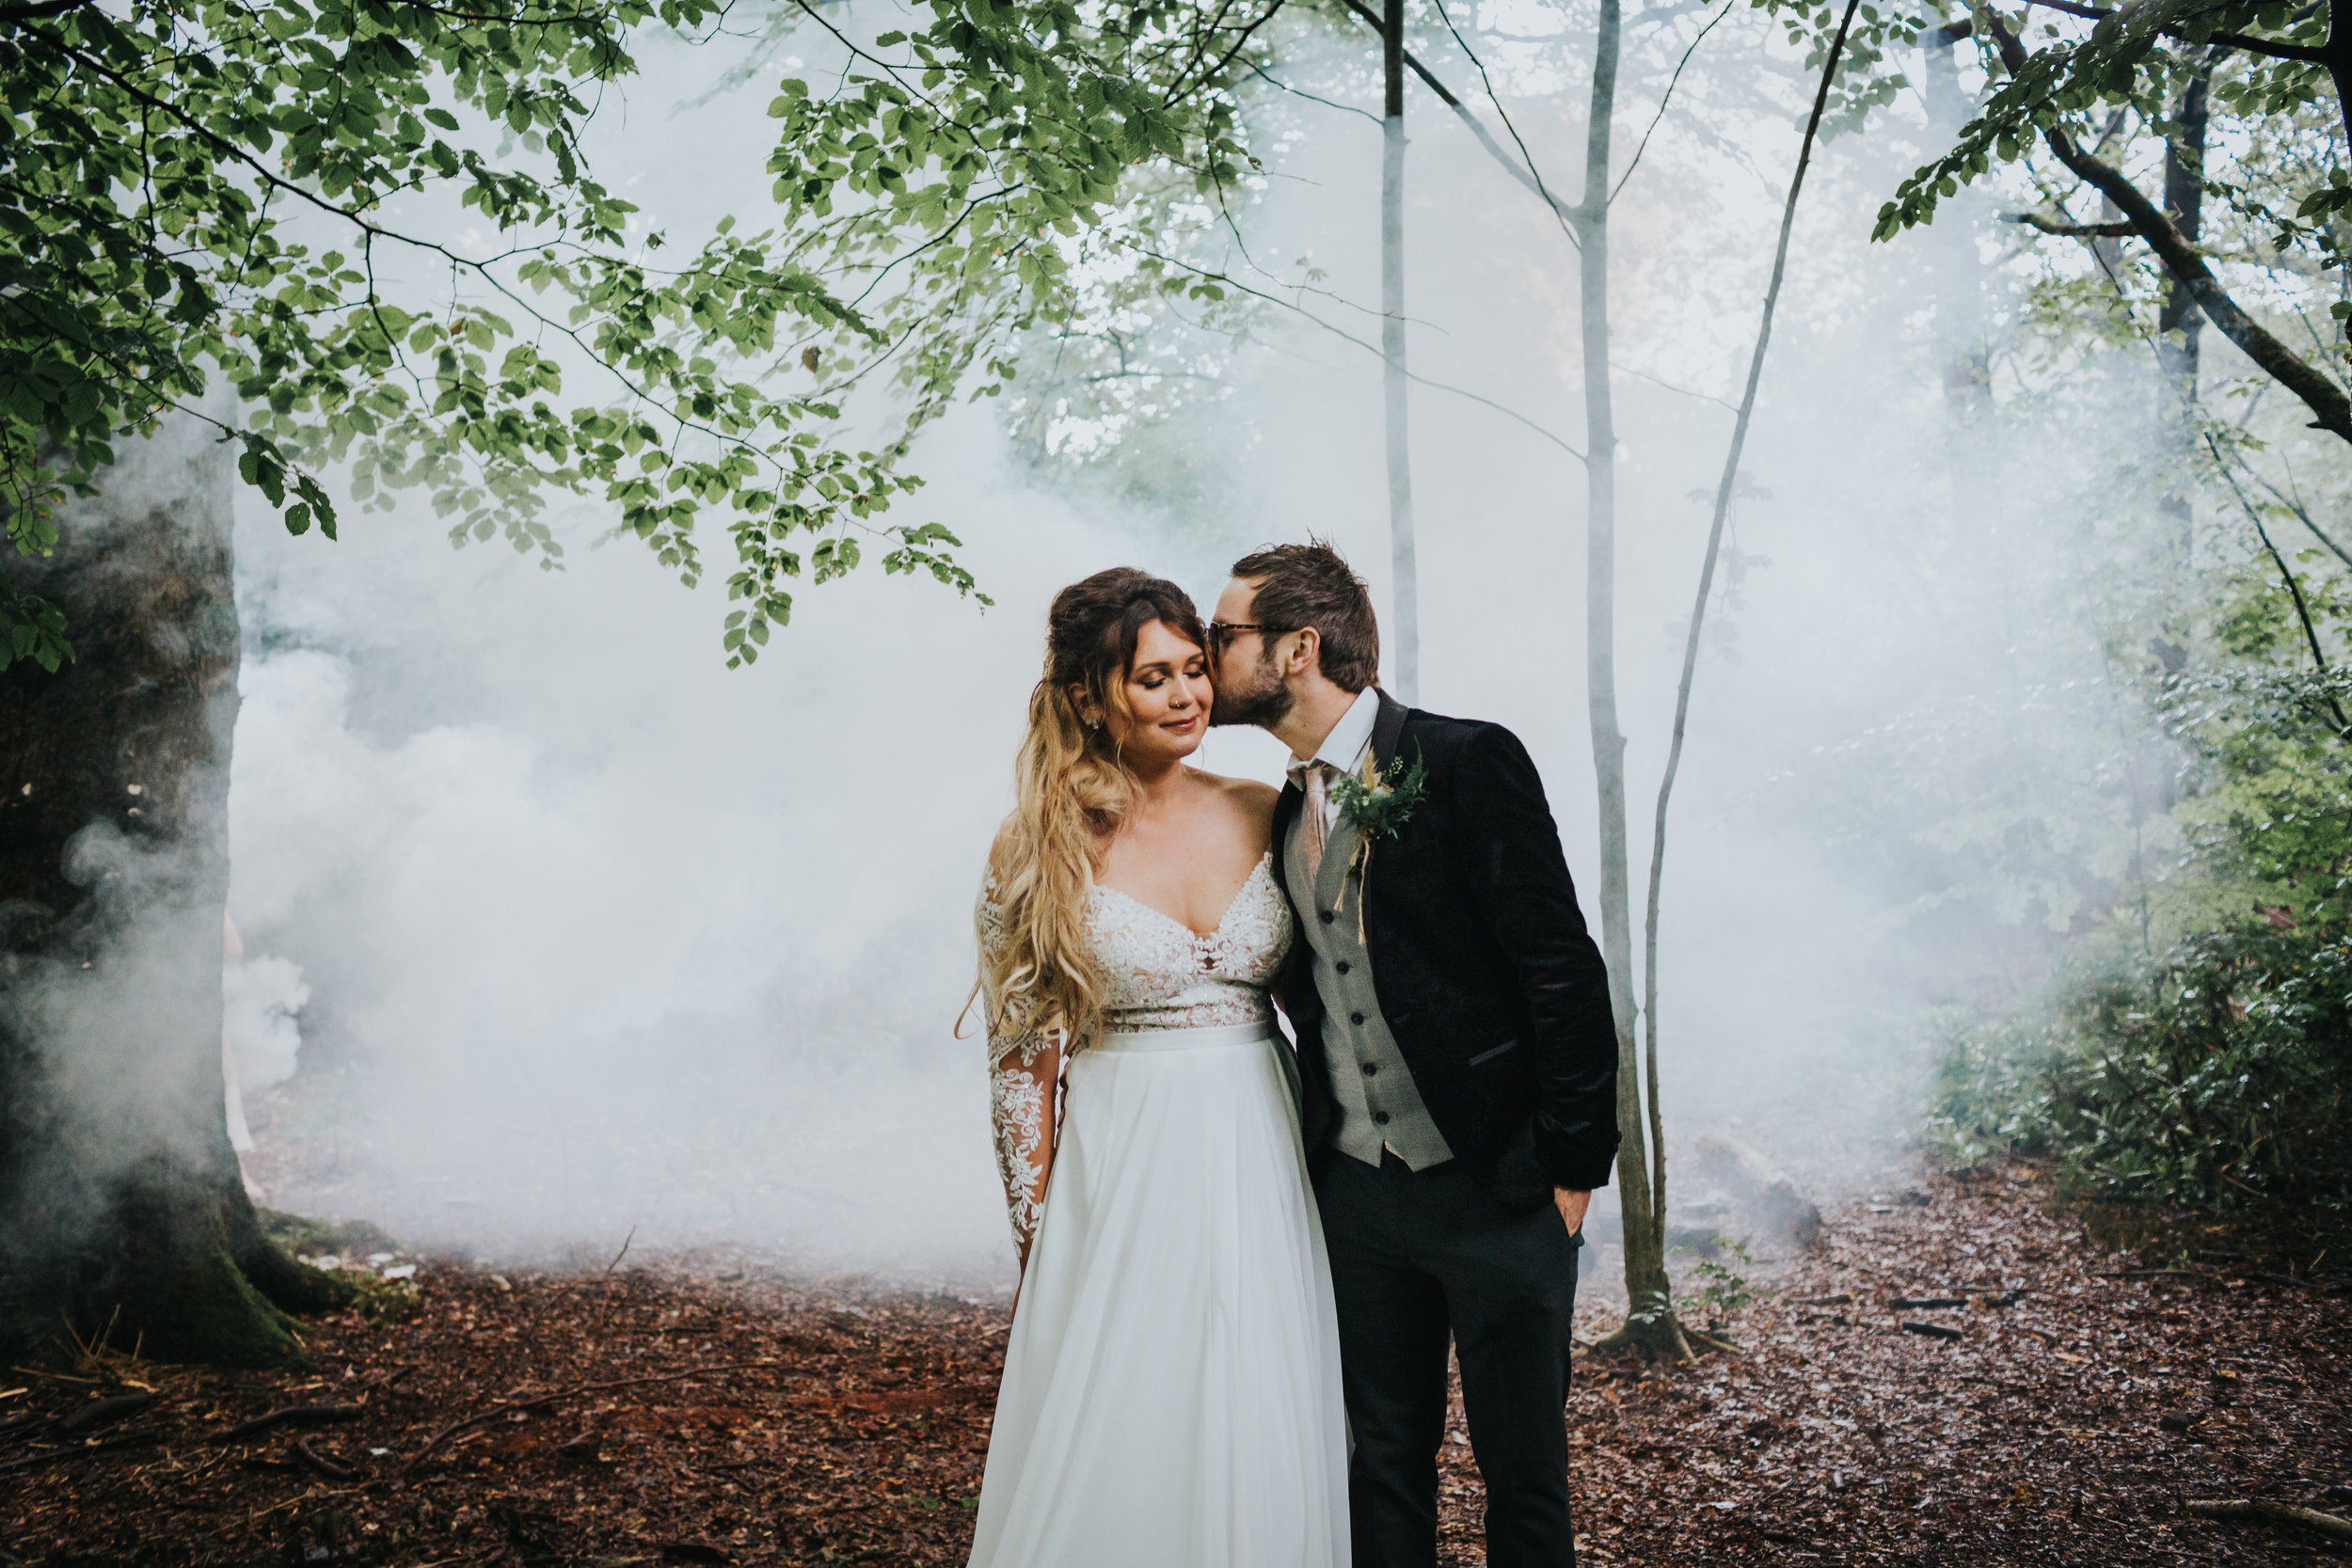 Bride and groom stand together in front of the wood land mist.